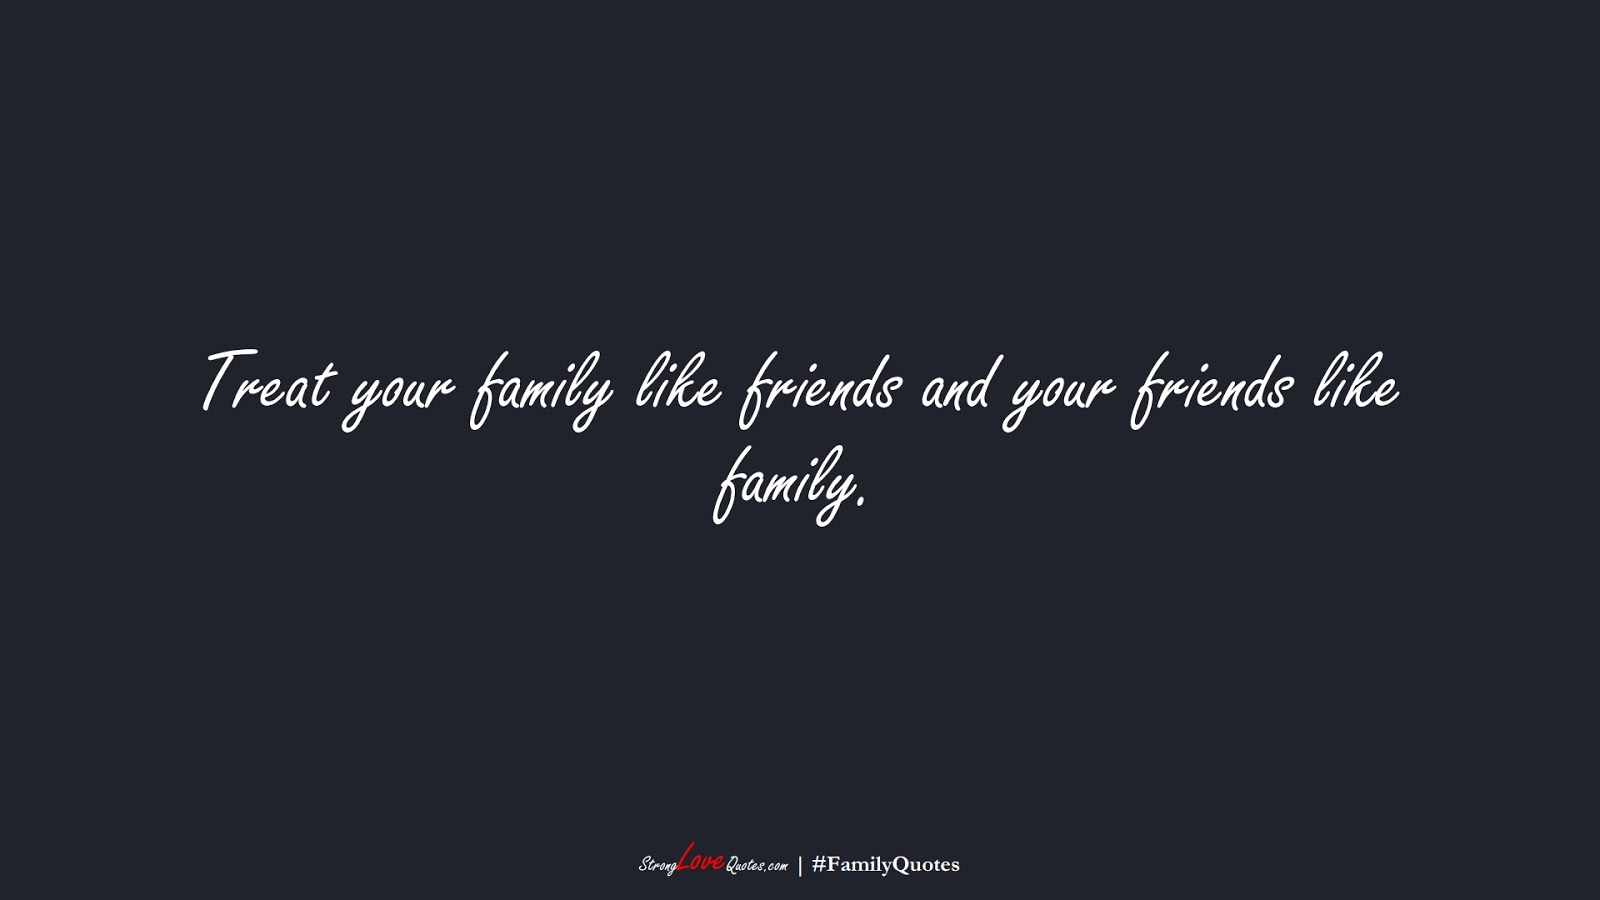 Treat your family like friends and your friends like family.FALSE